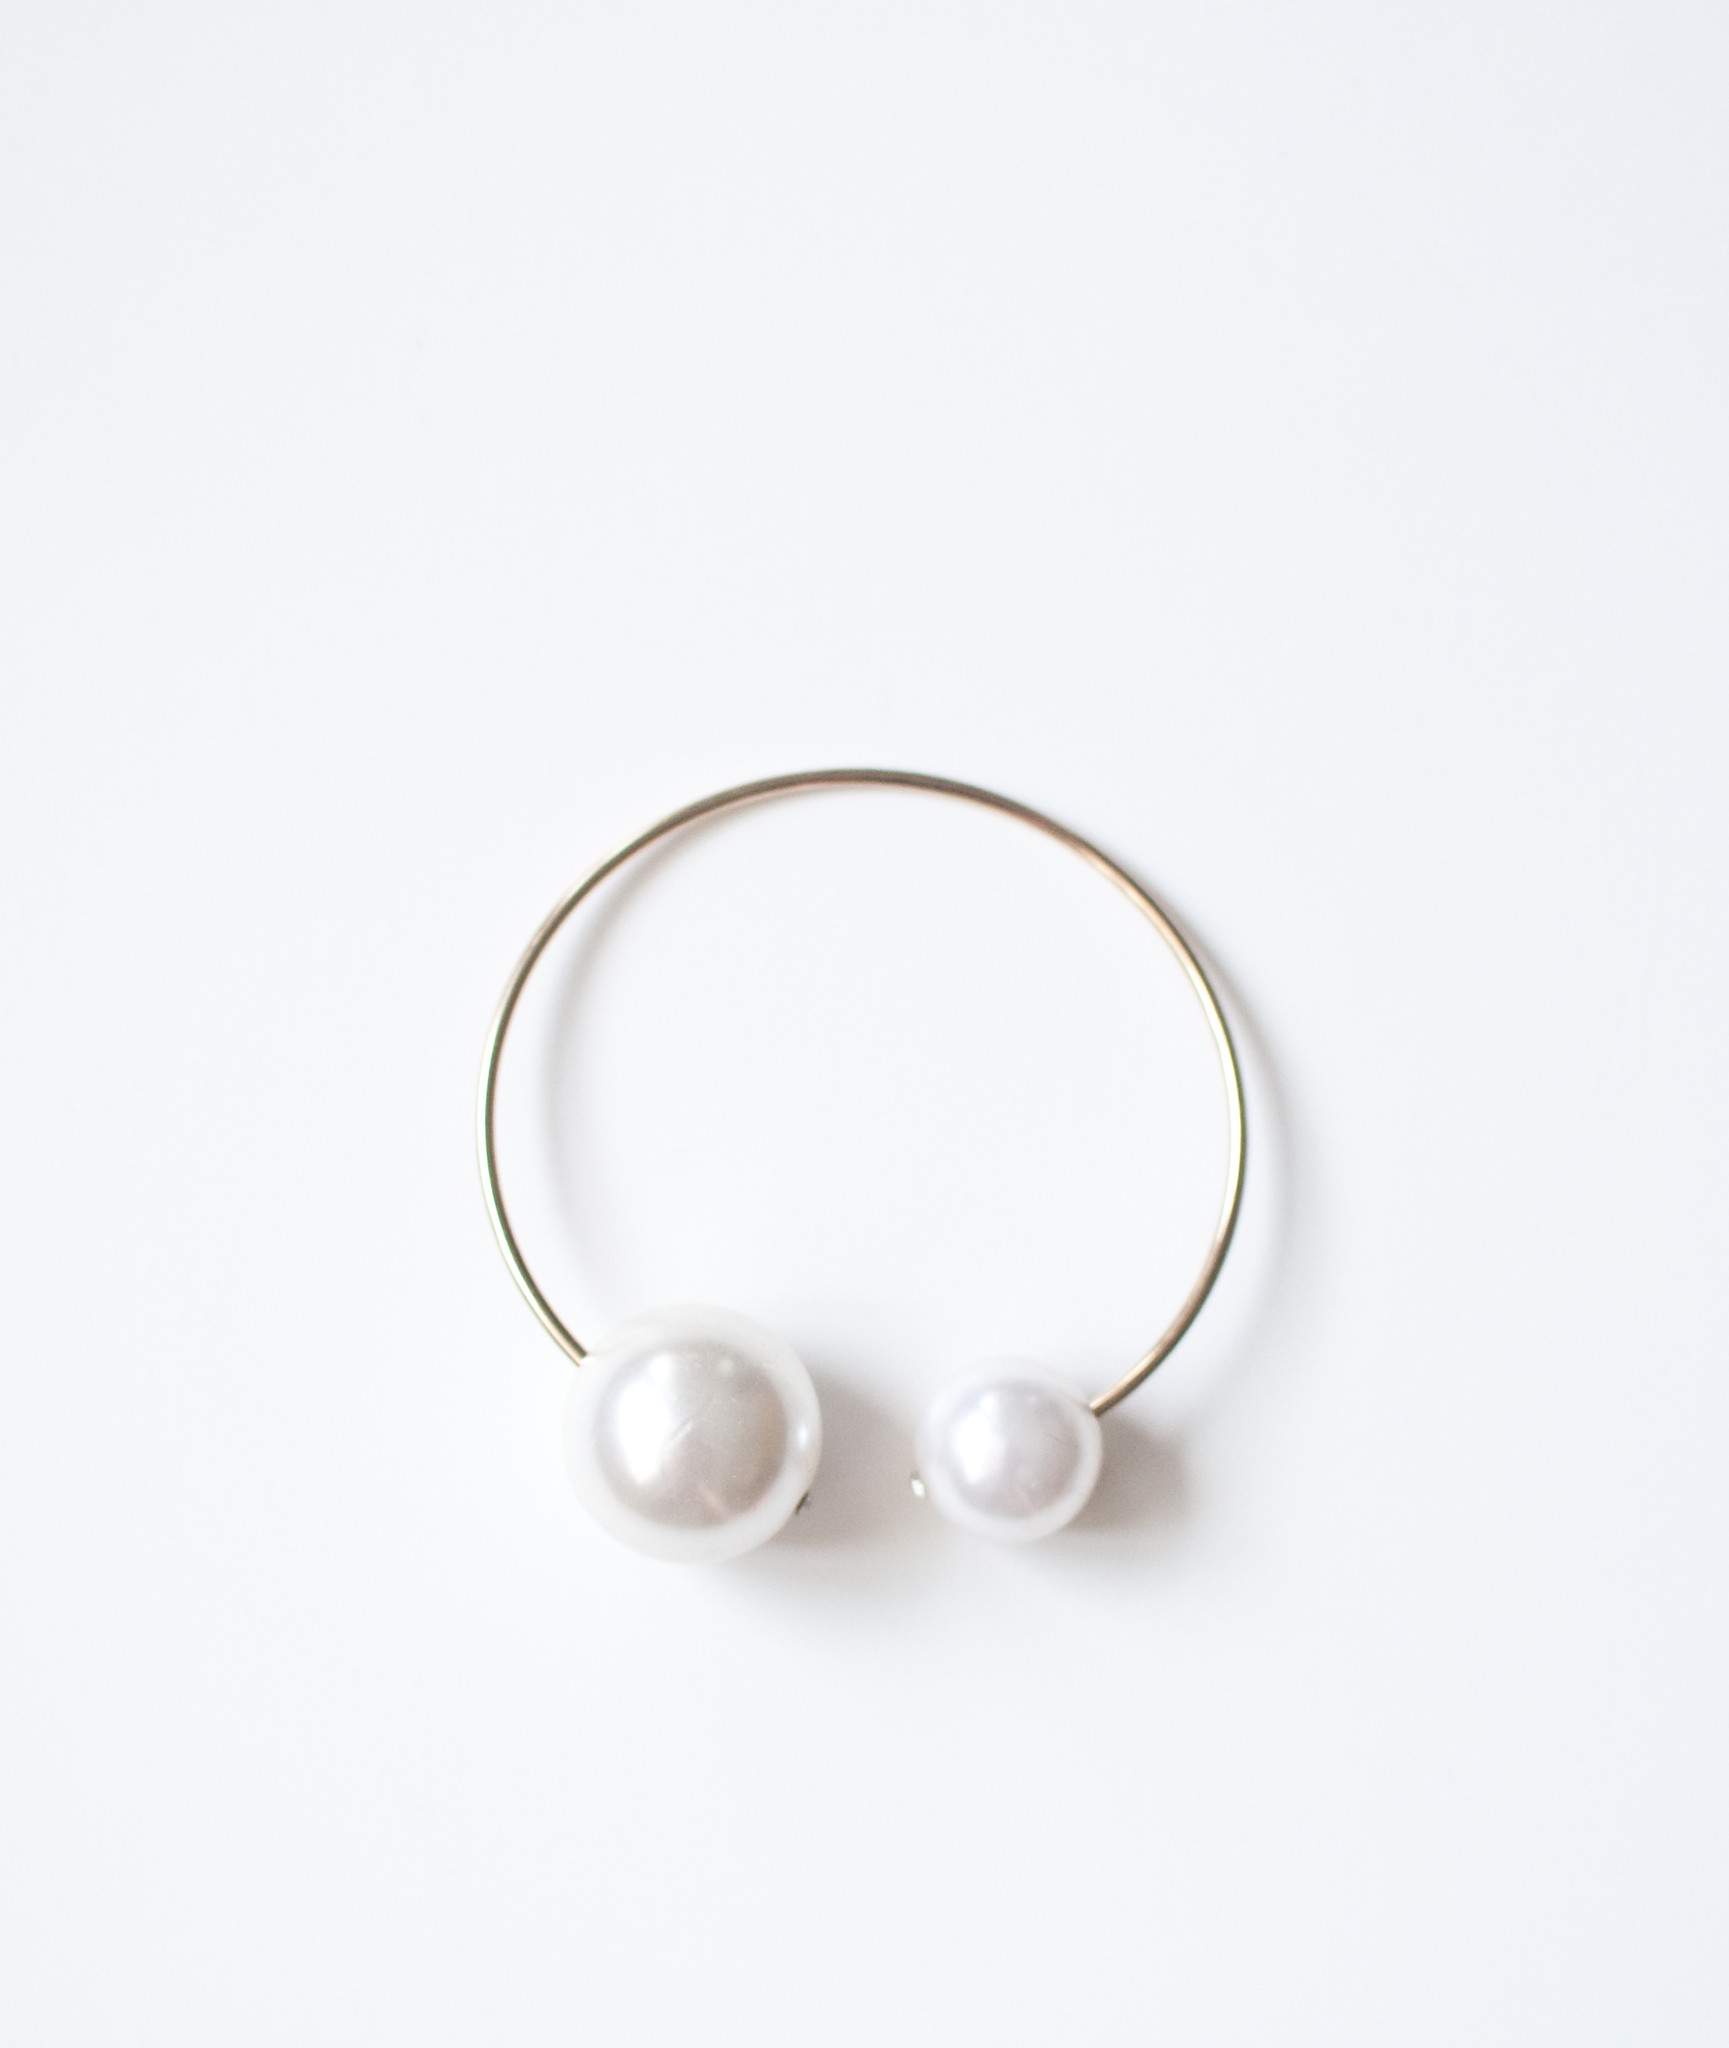 Double pearl bracelet/arm cuff